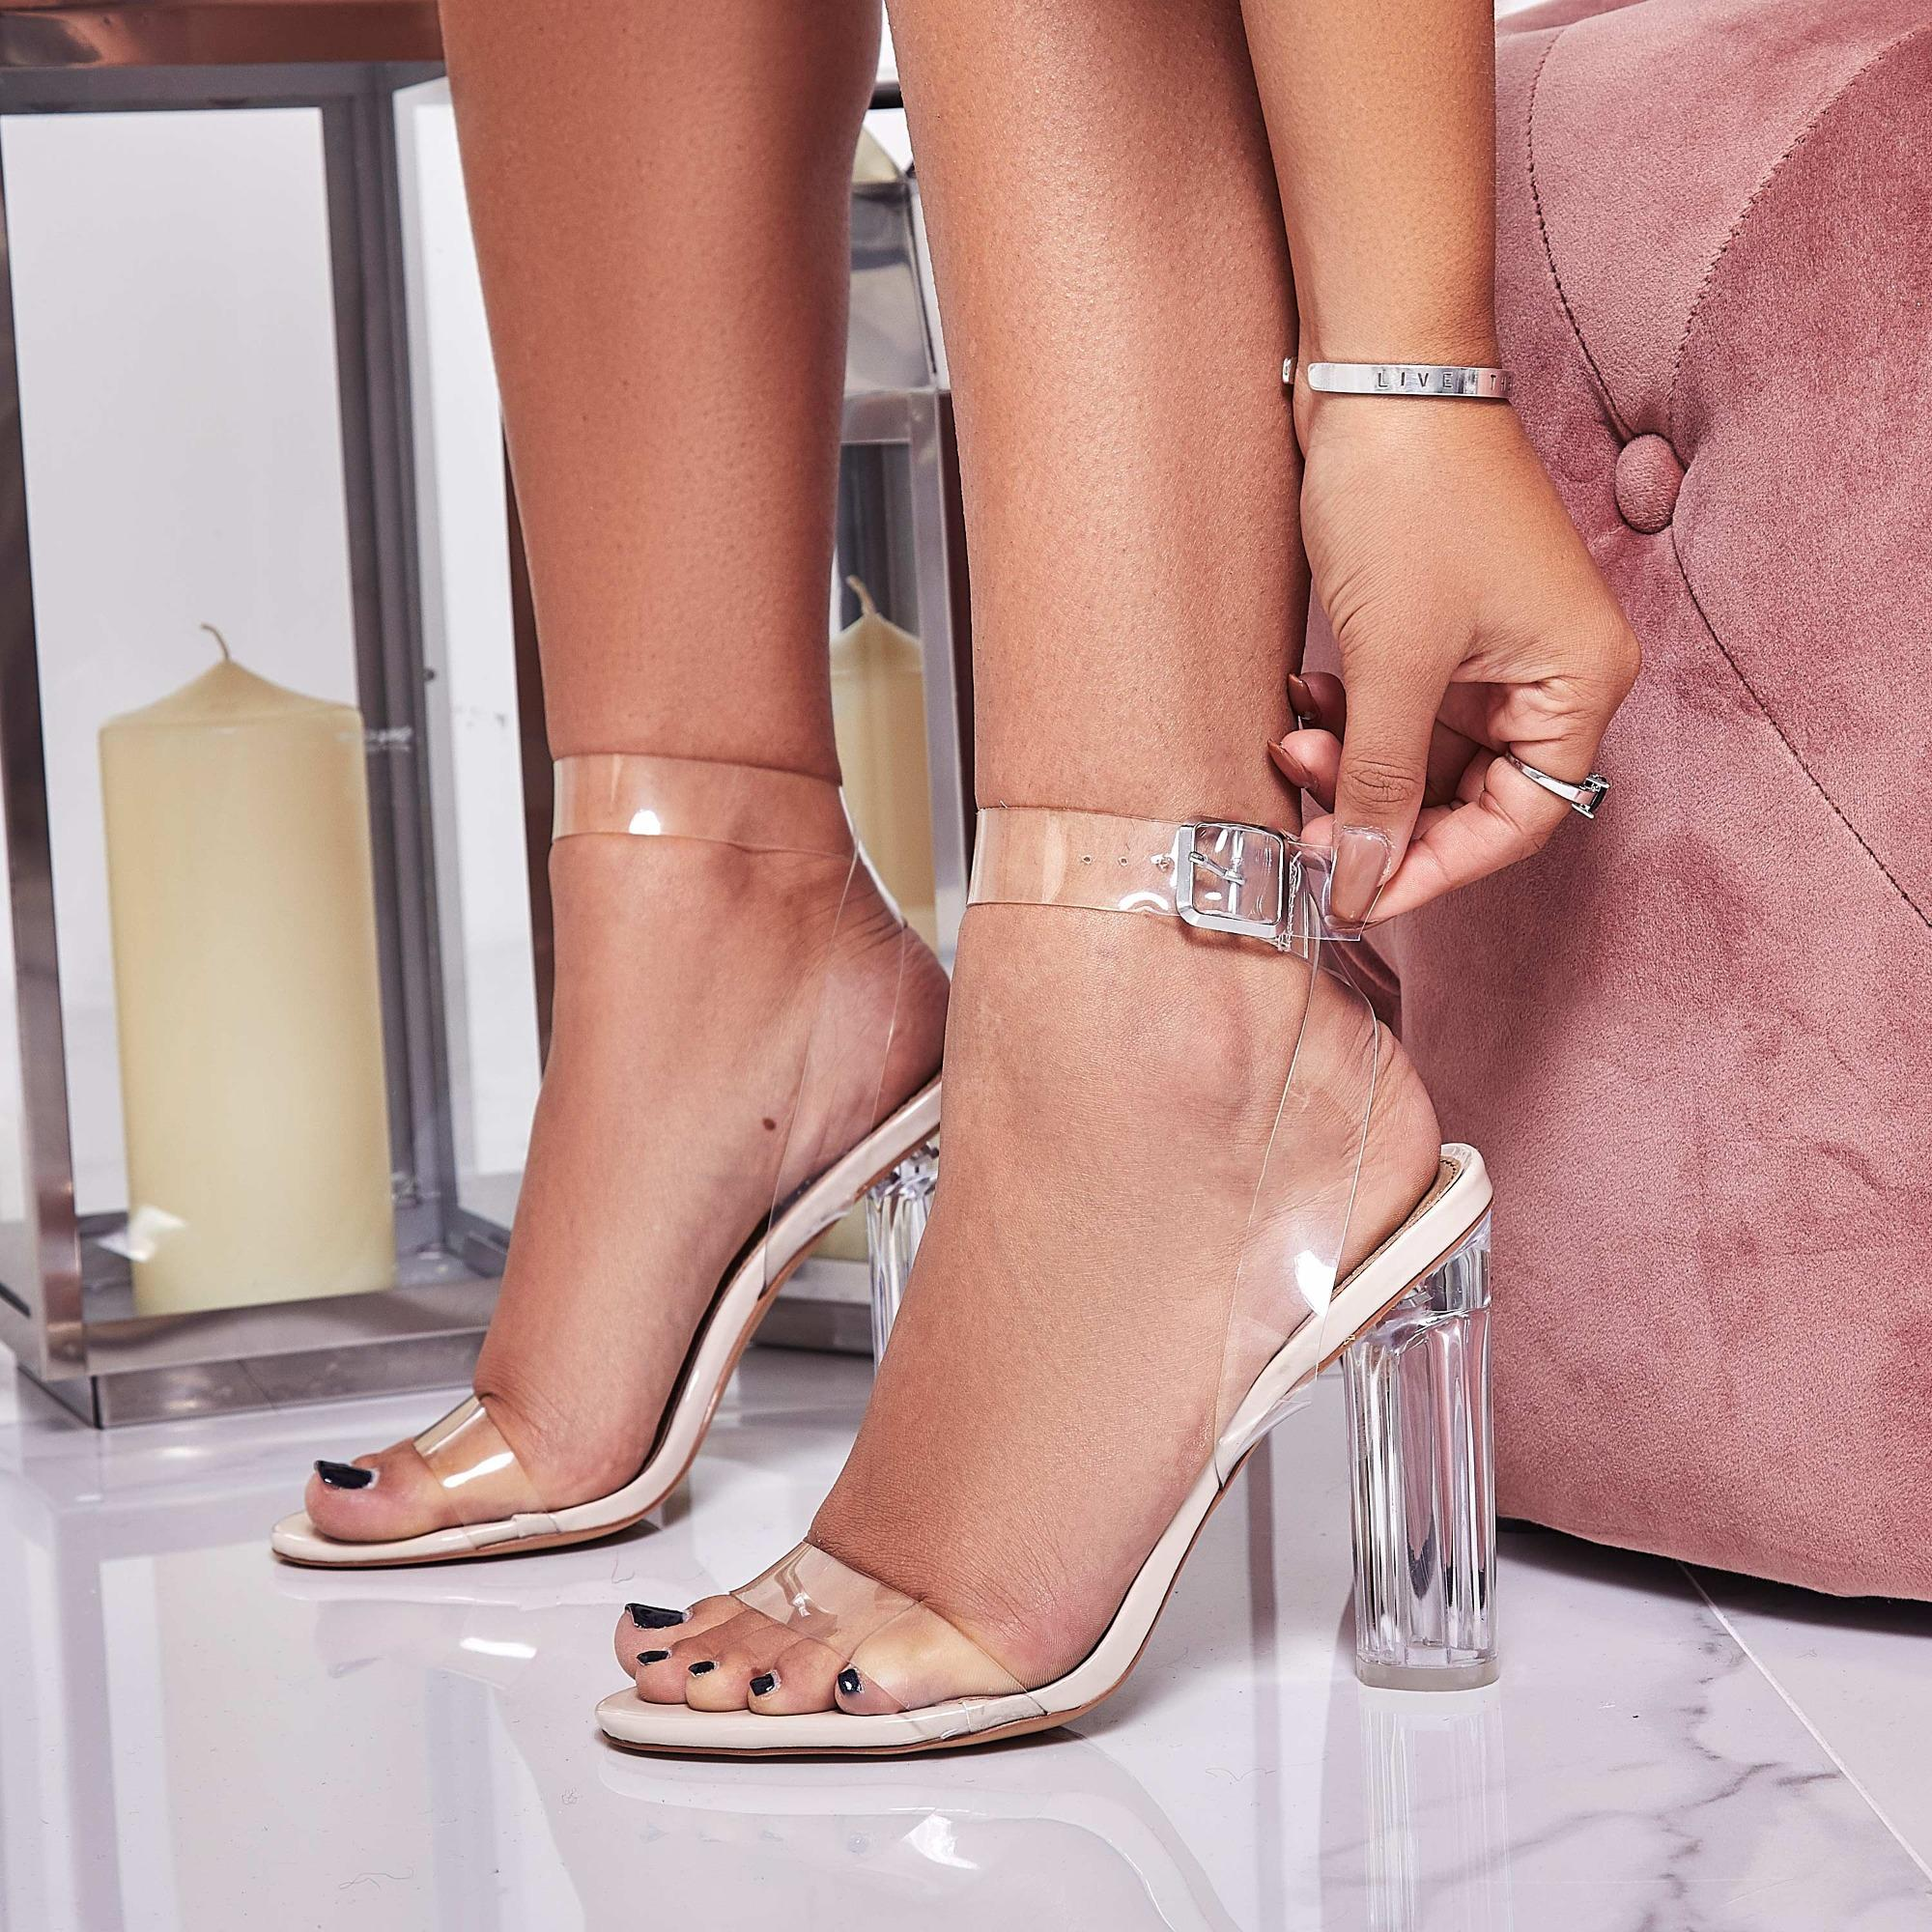 China Pvc Women Shoes Pumps Crystal Perspex Clear High Heels Lady Shoes Sandals